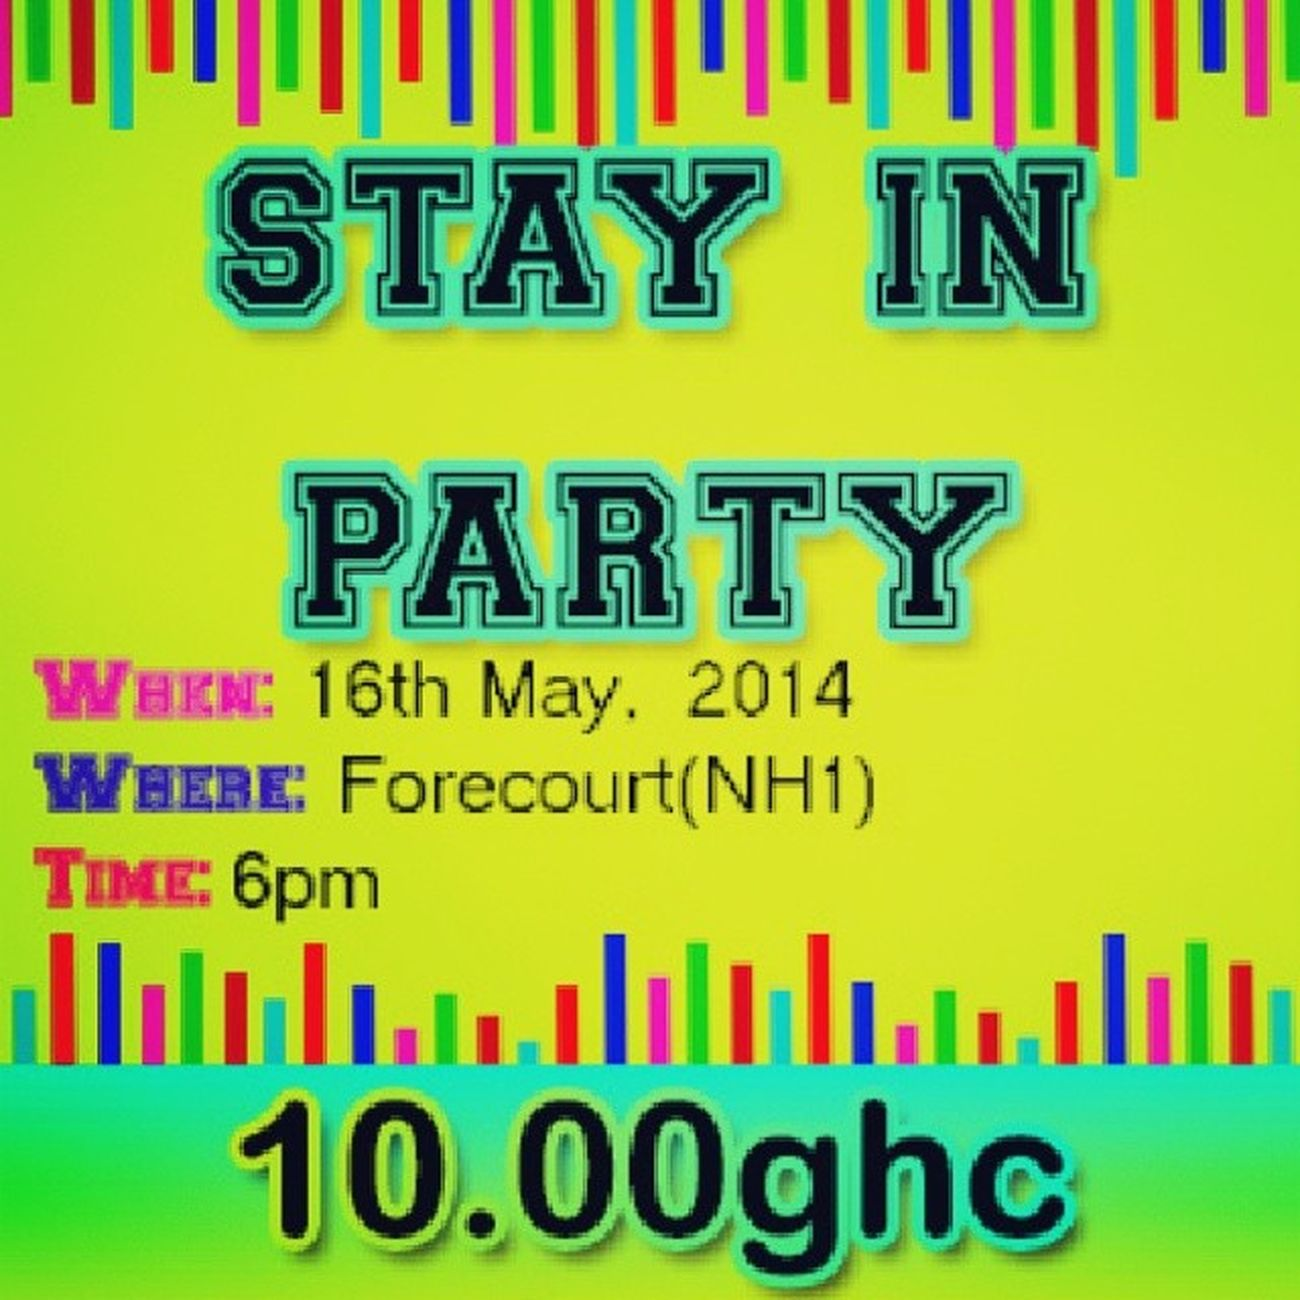 Stay in Party is up. Date is 16th May at NH1 forecourt, Udsgh - Navrongo campus. Now you have every right to Party!! I'm repping.... FinalYearTins